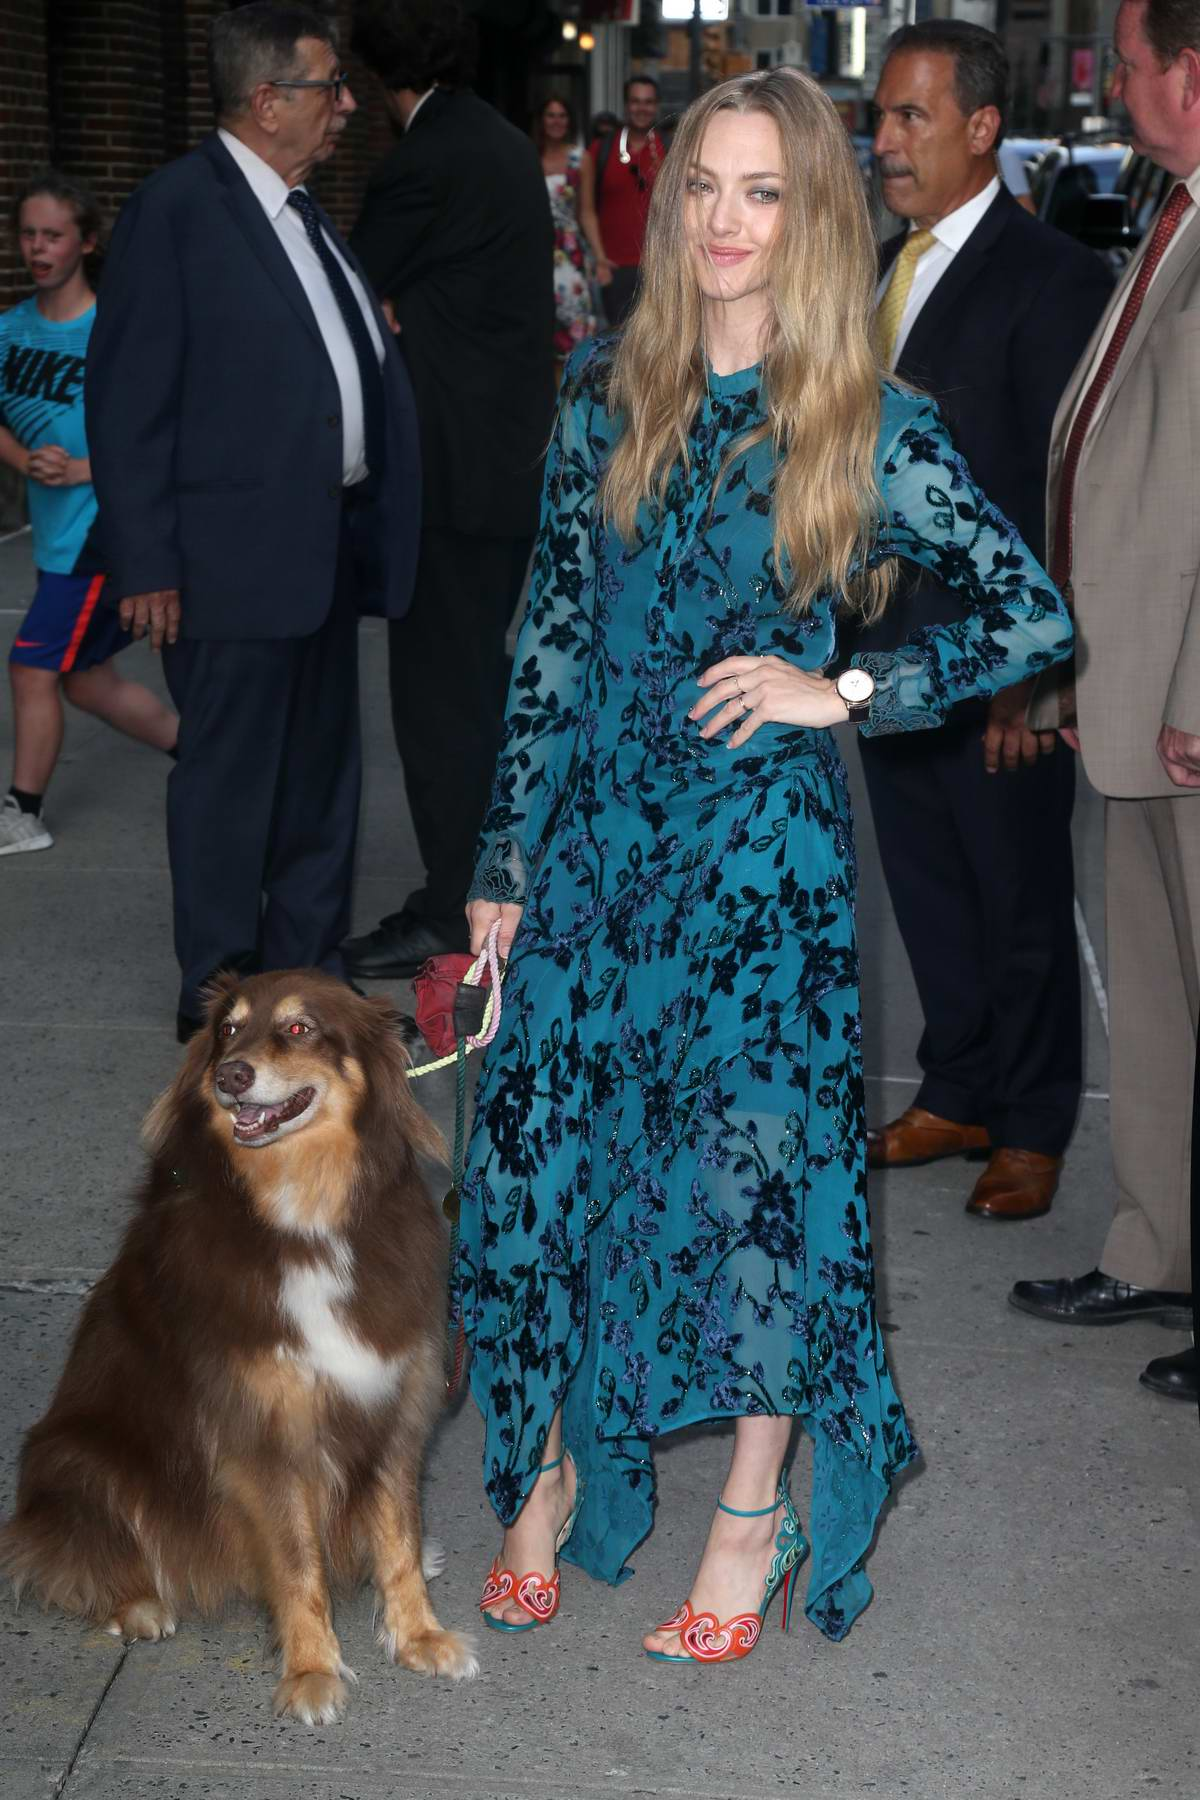 Amanda Seyfried poses with her dog Finn while visiting 'The Late Show With Stephen Colbert' in New York City